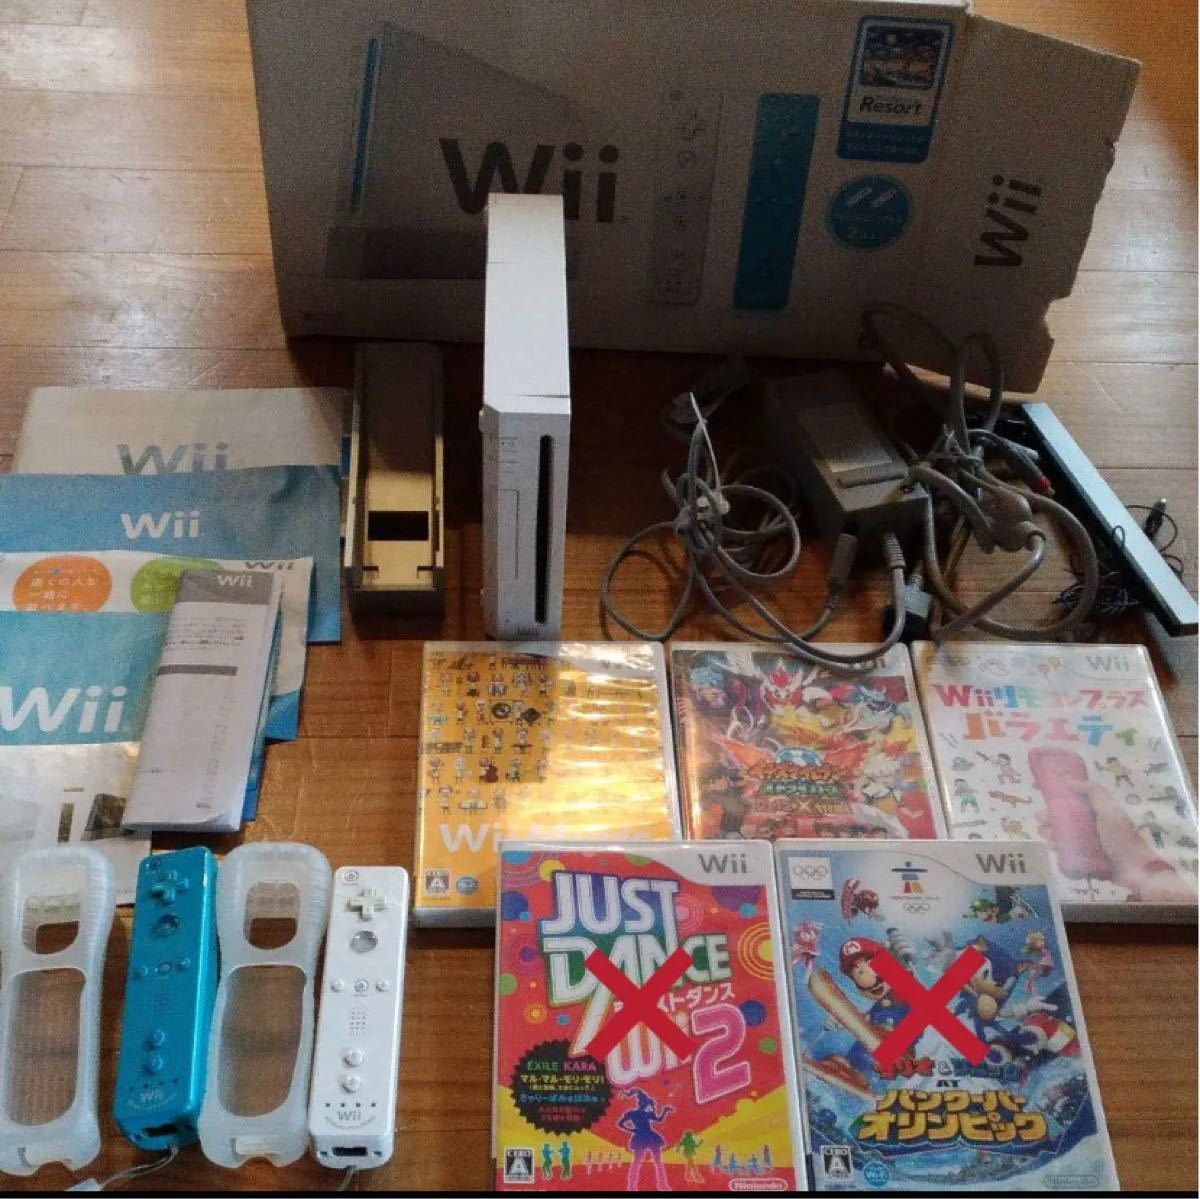 Wii 本体(説明書付き) ・wii コントローラー×2 ・ソフト3種類